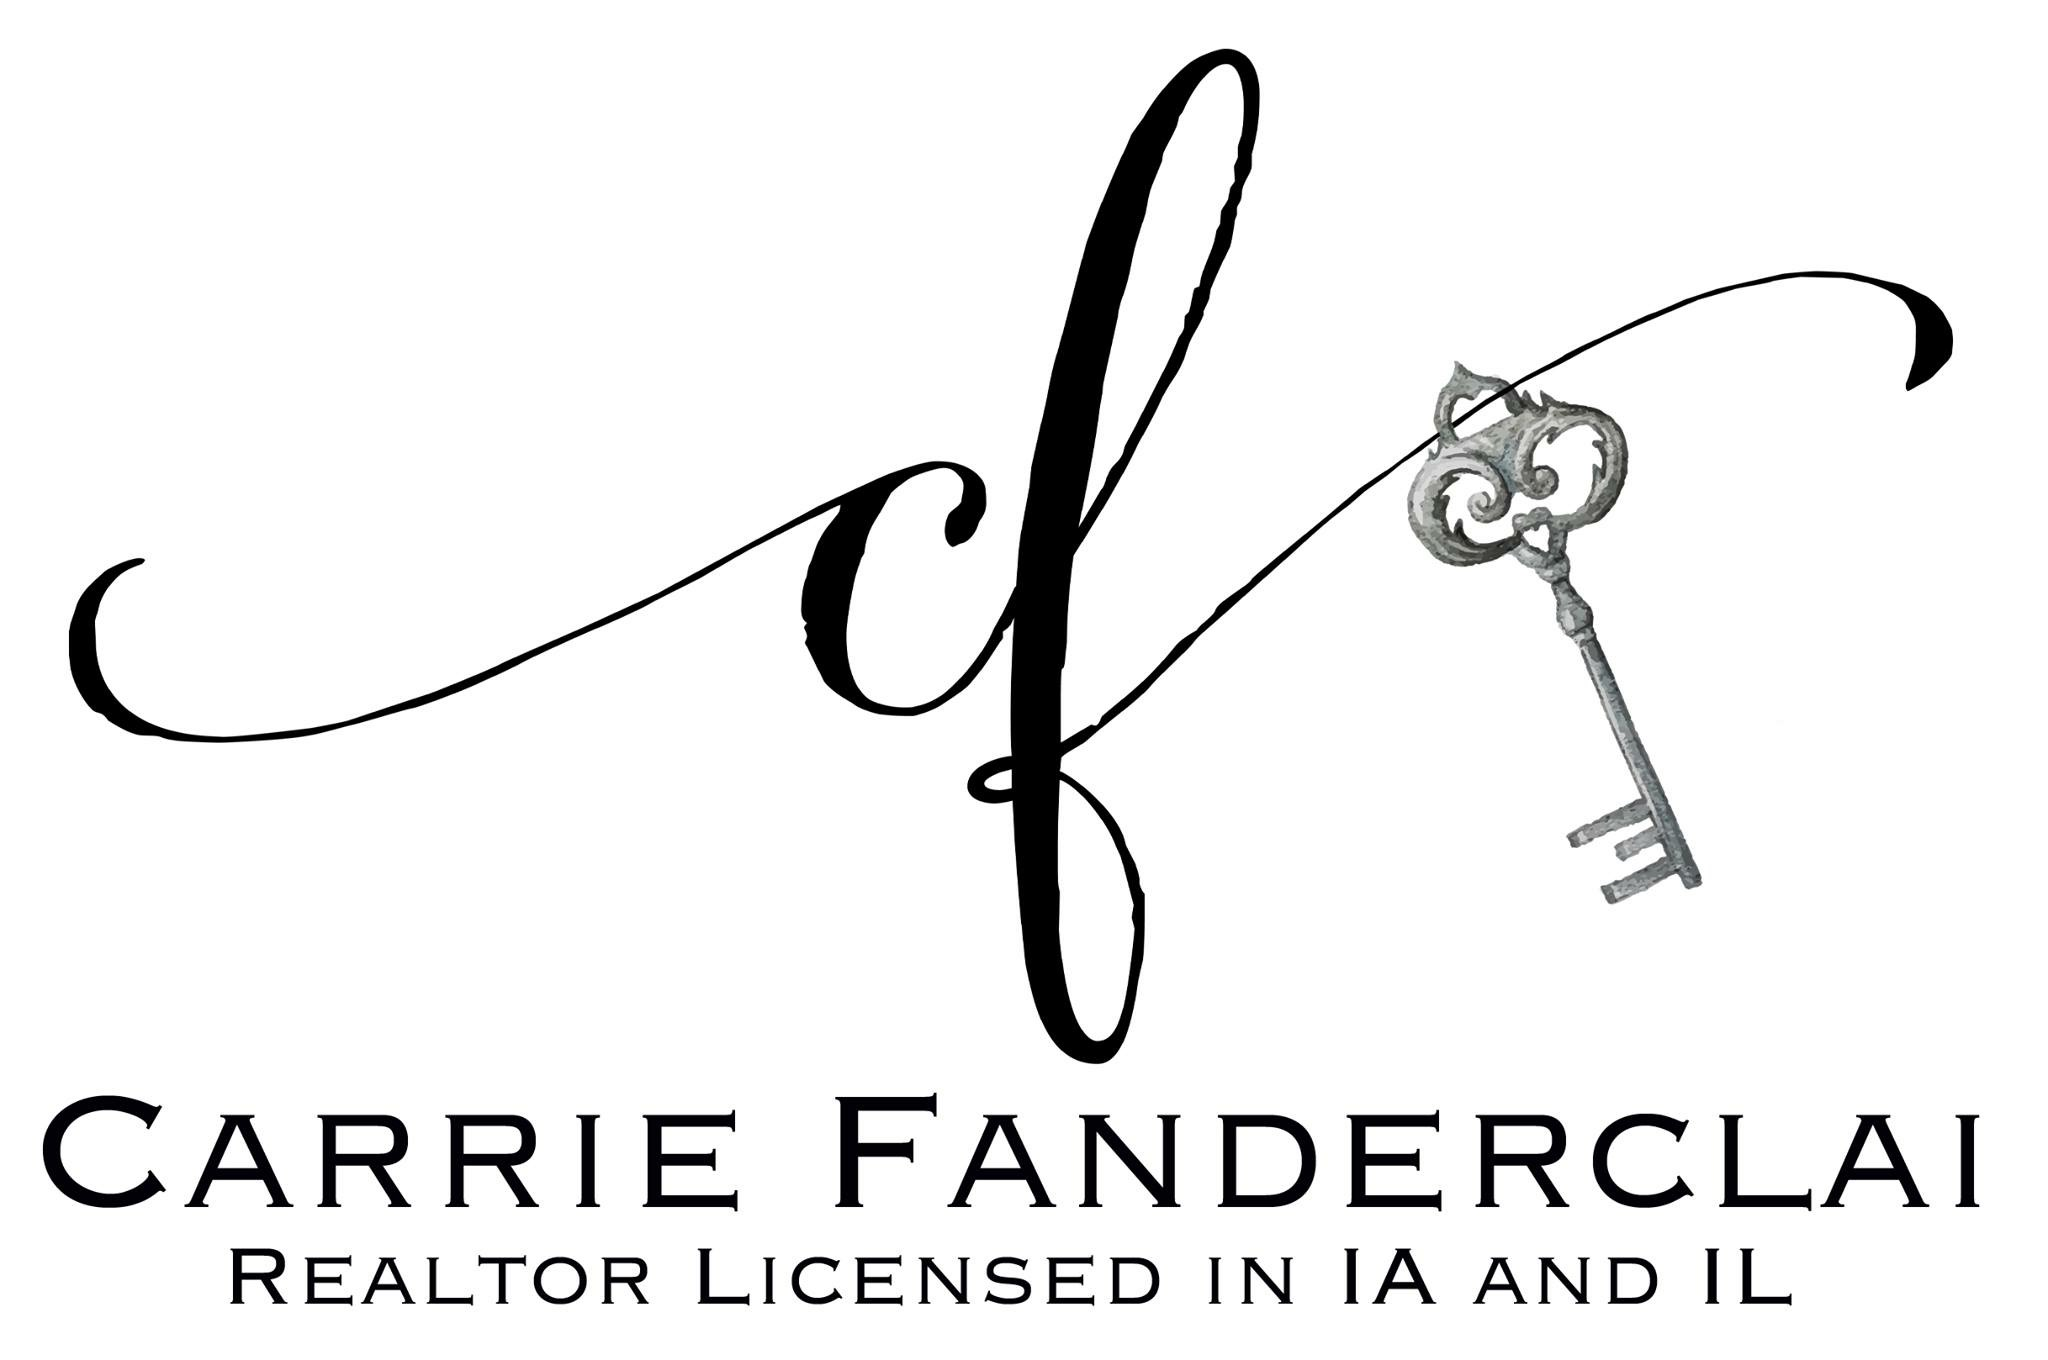 Carrie Fanderclai, Realtor - Keller Williams Realty